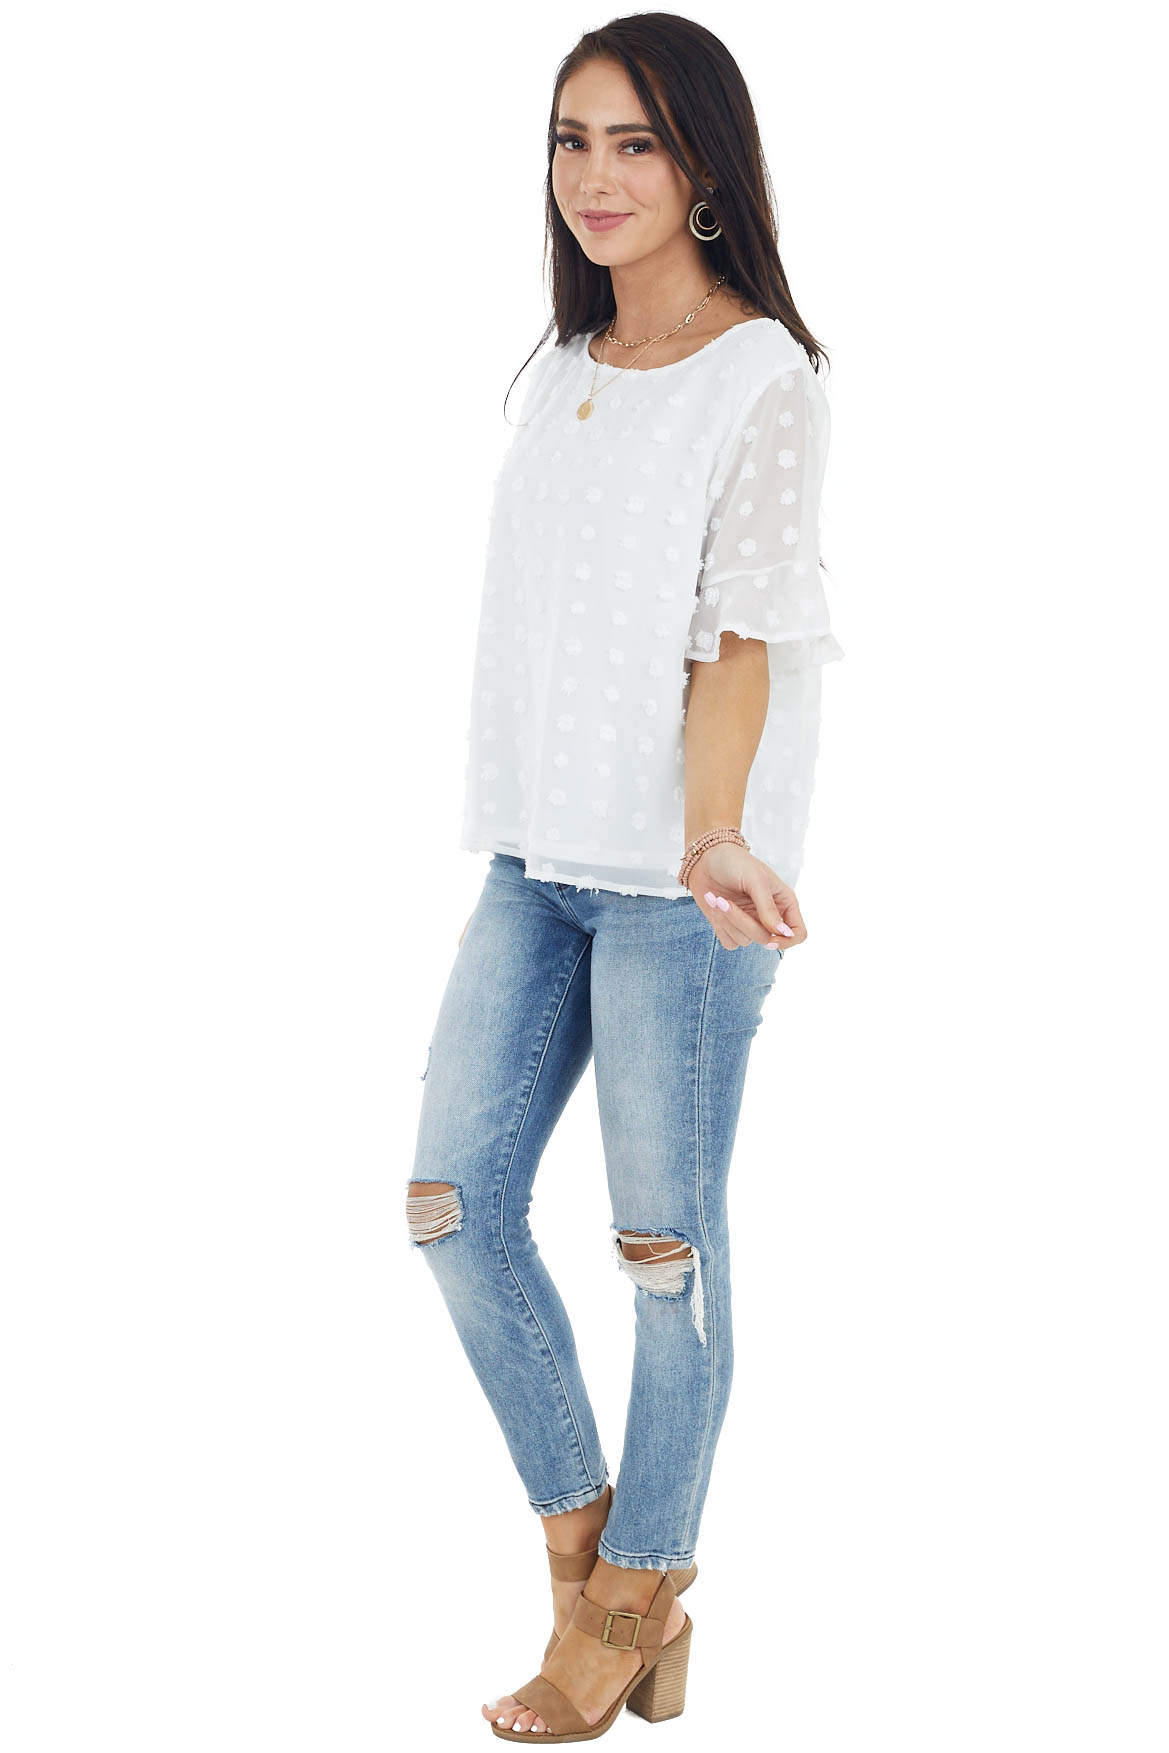 Off White Swiss Dot Blouse with Short Ruffle Sleeves